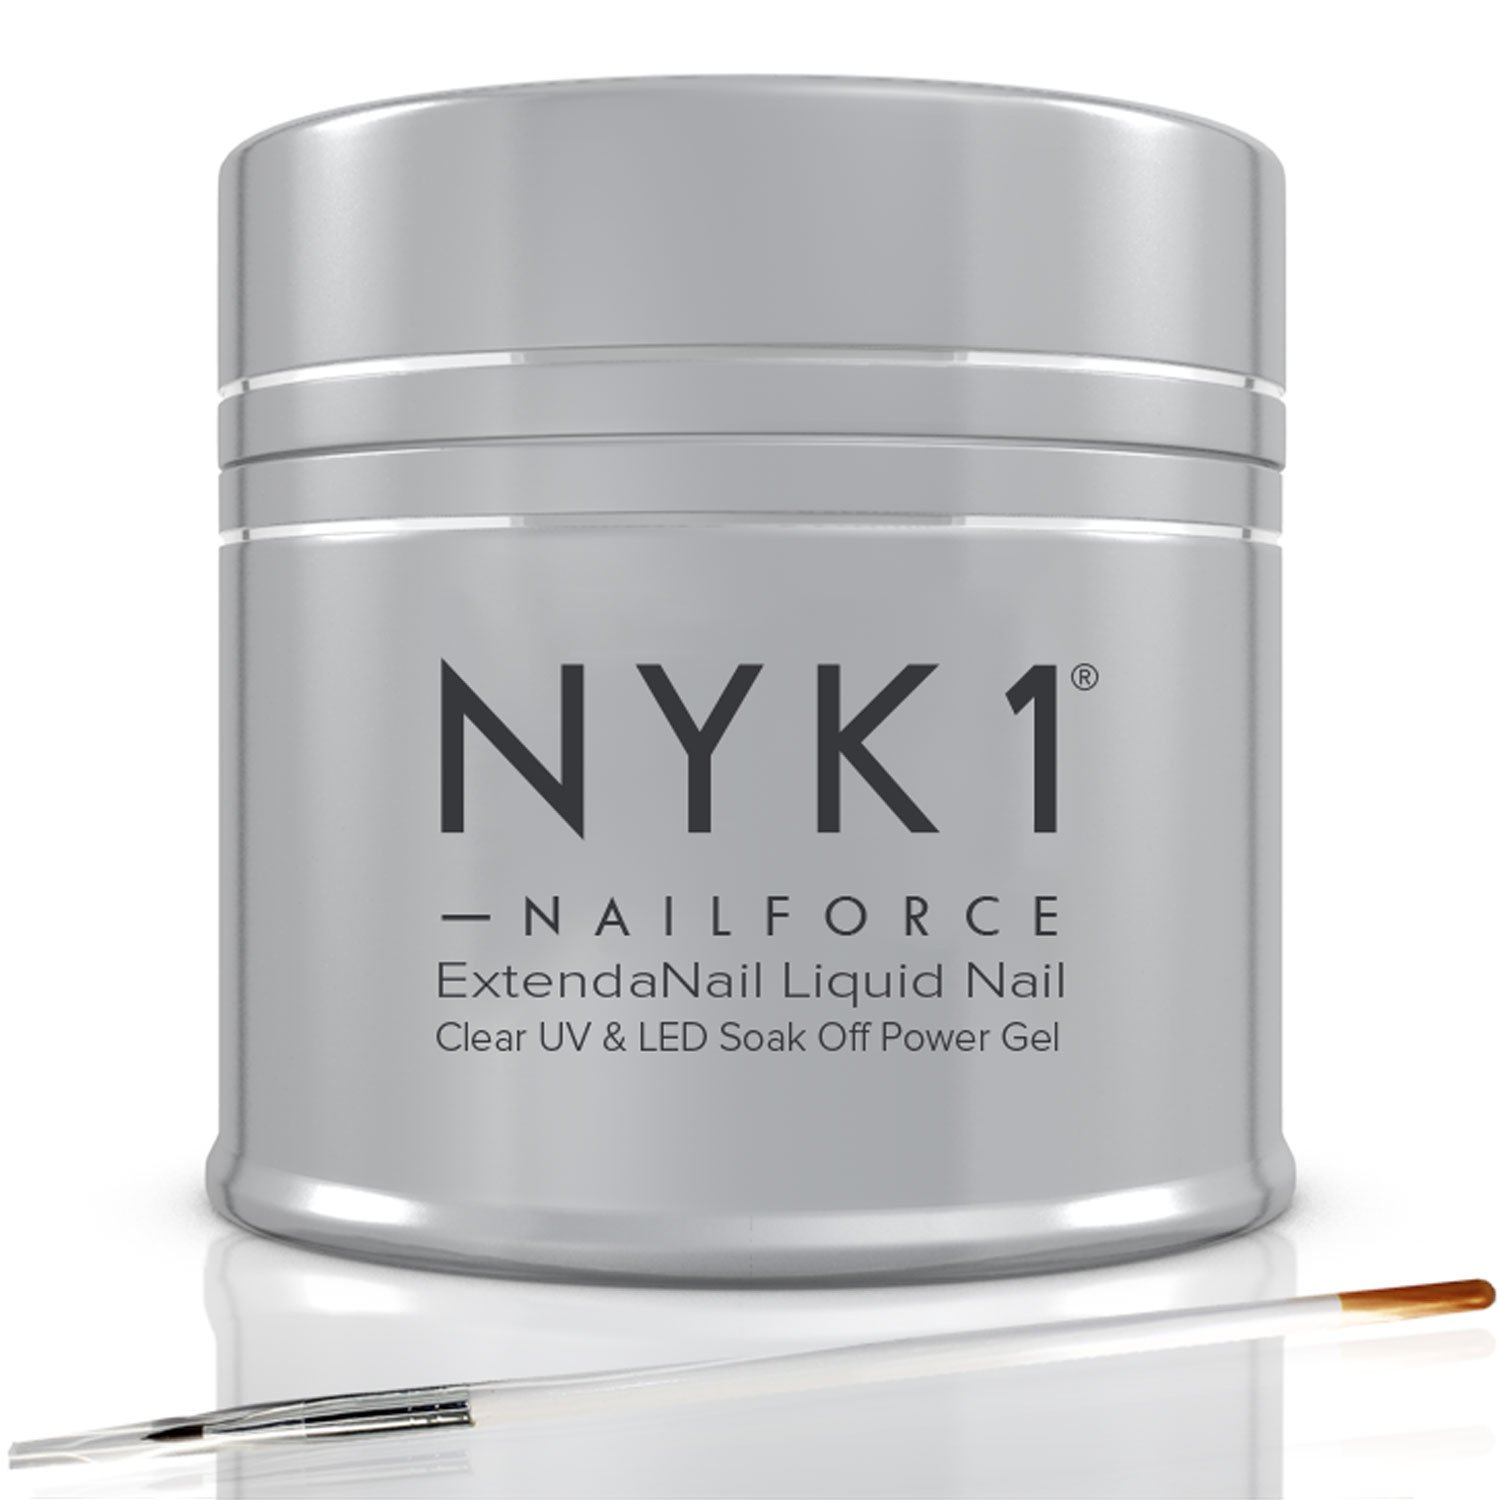 NYK1 NAIL FORCE UV and LED Power Gel Builder Glue Repair, Fix Split ...